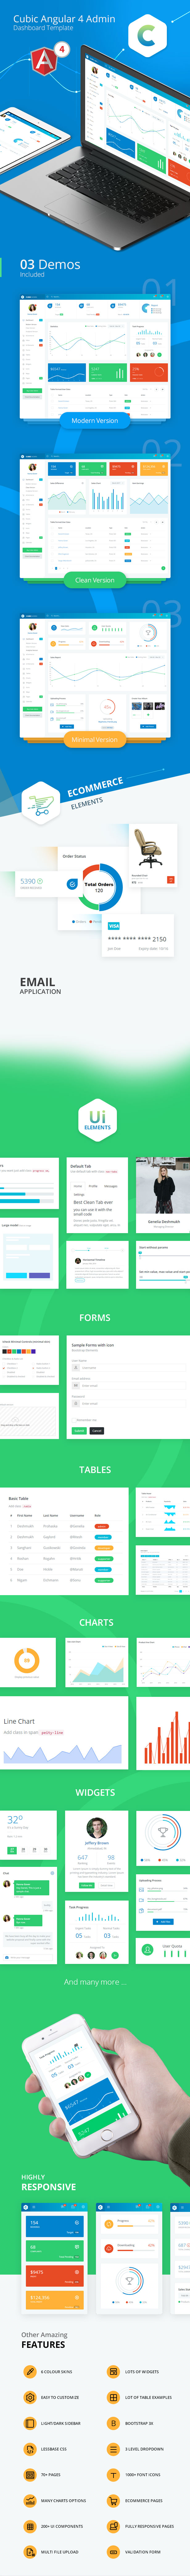 Cubic - Angular 4 Admin Template with Multiple Dashboard - 2